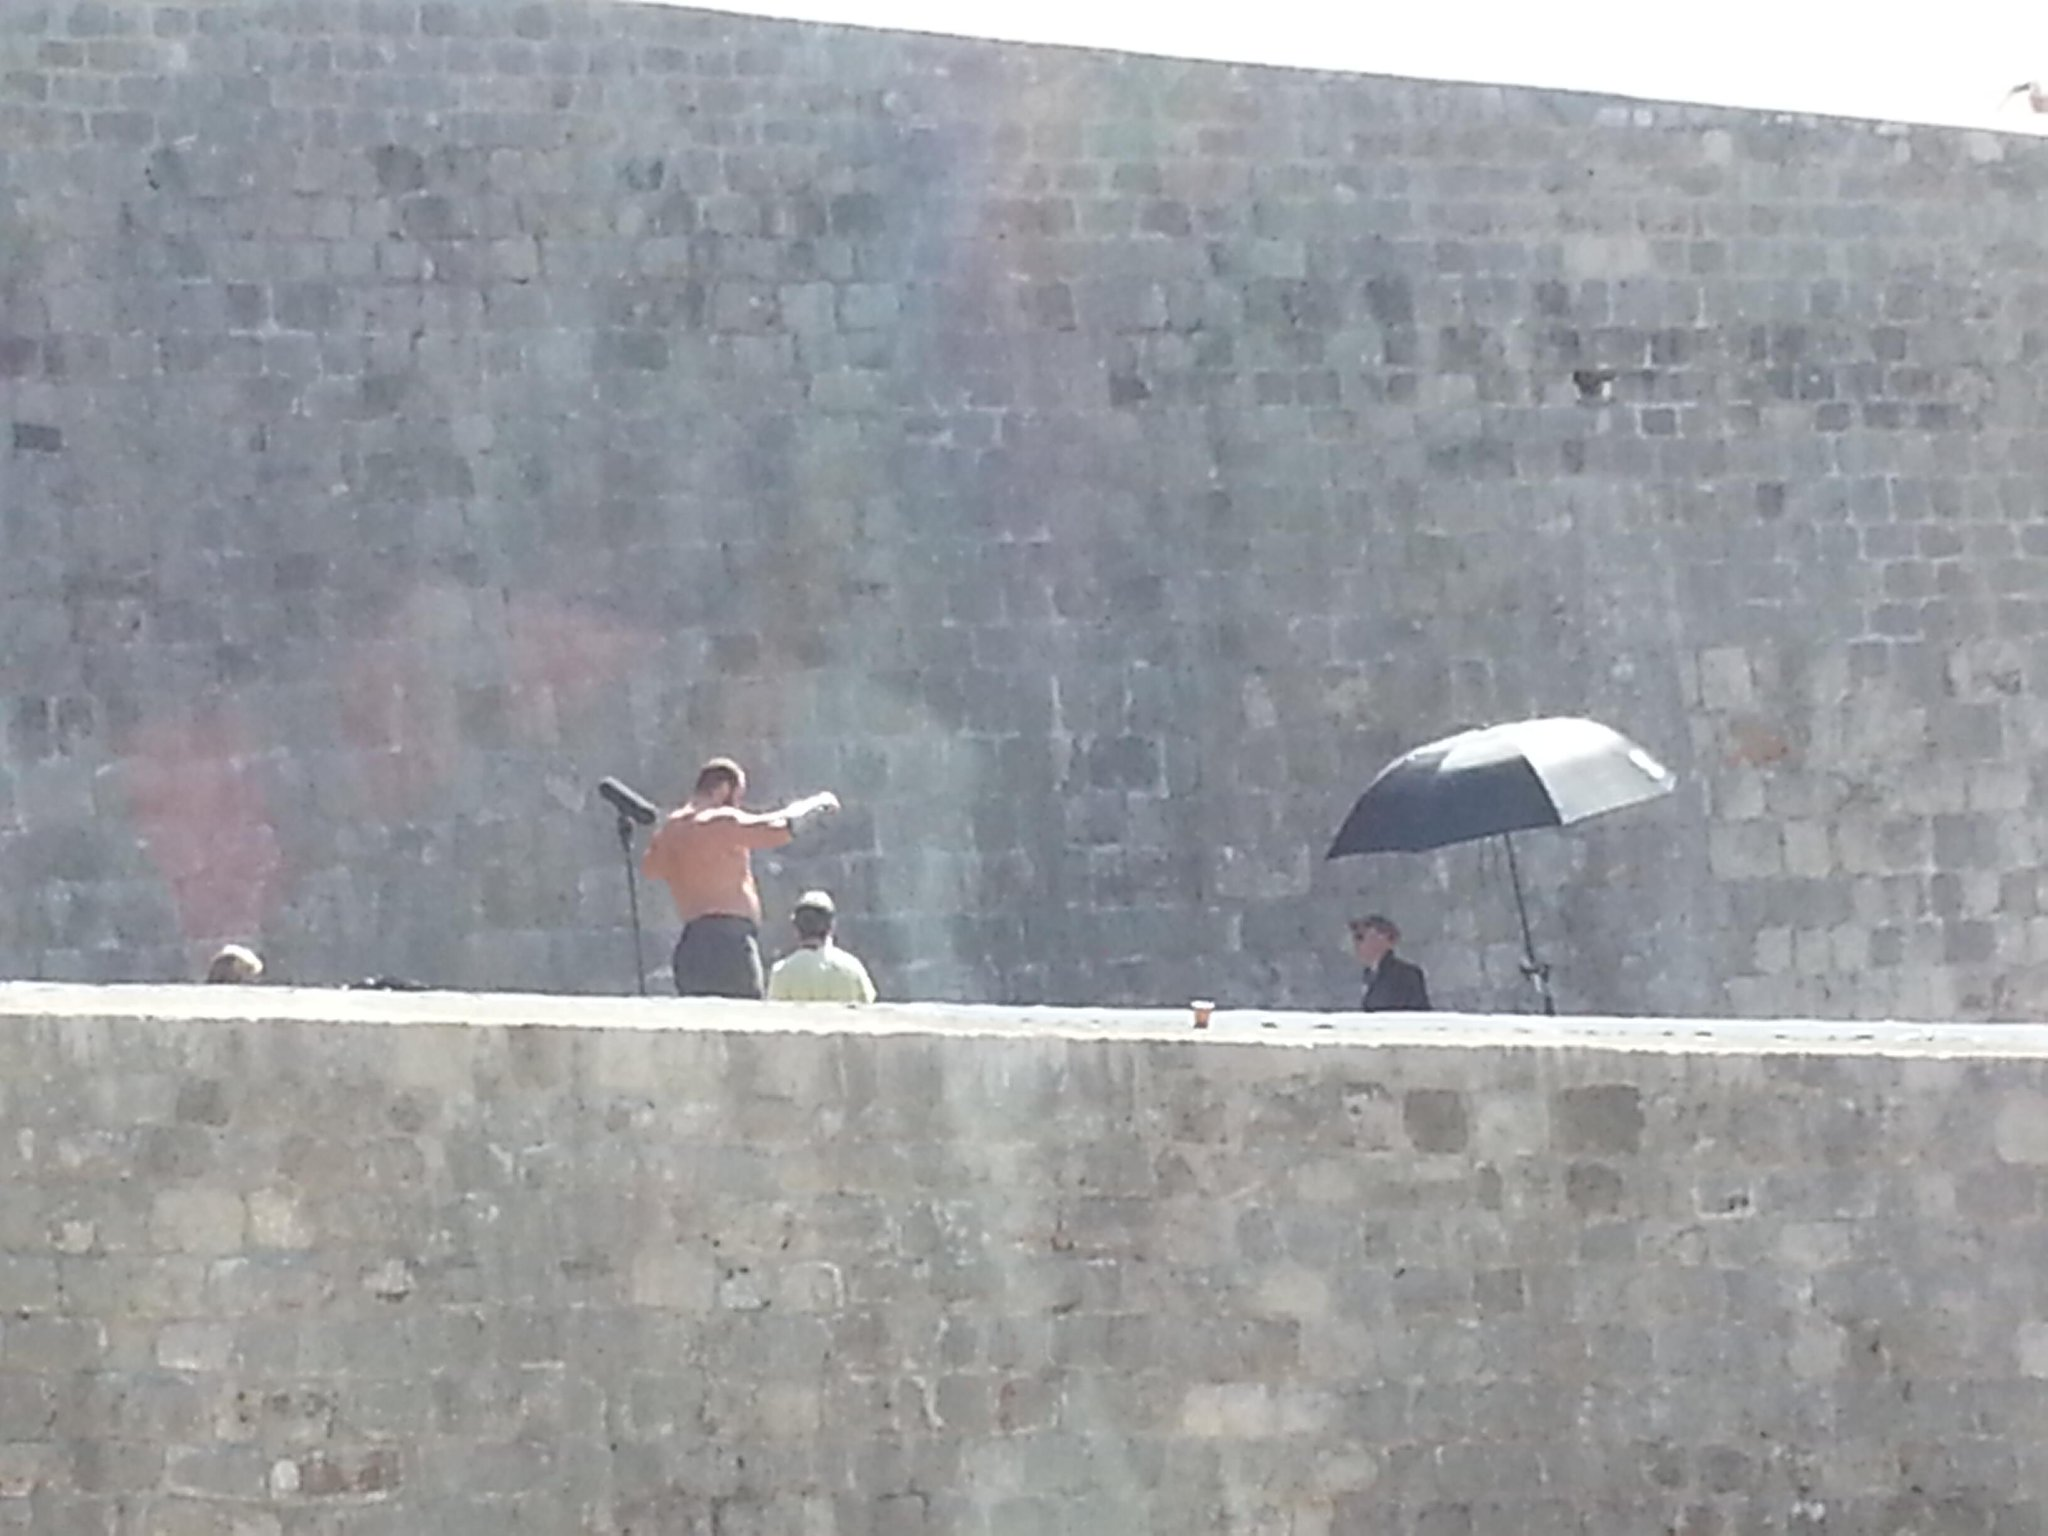 RT @Bautovic: @GameOfThrones #filming in #dubrovnik croatia .Huge guy practice with sword Can't wait for #GameOfThrones 4th season! http://t.co/Y505lkUUNO